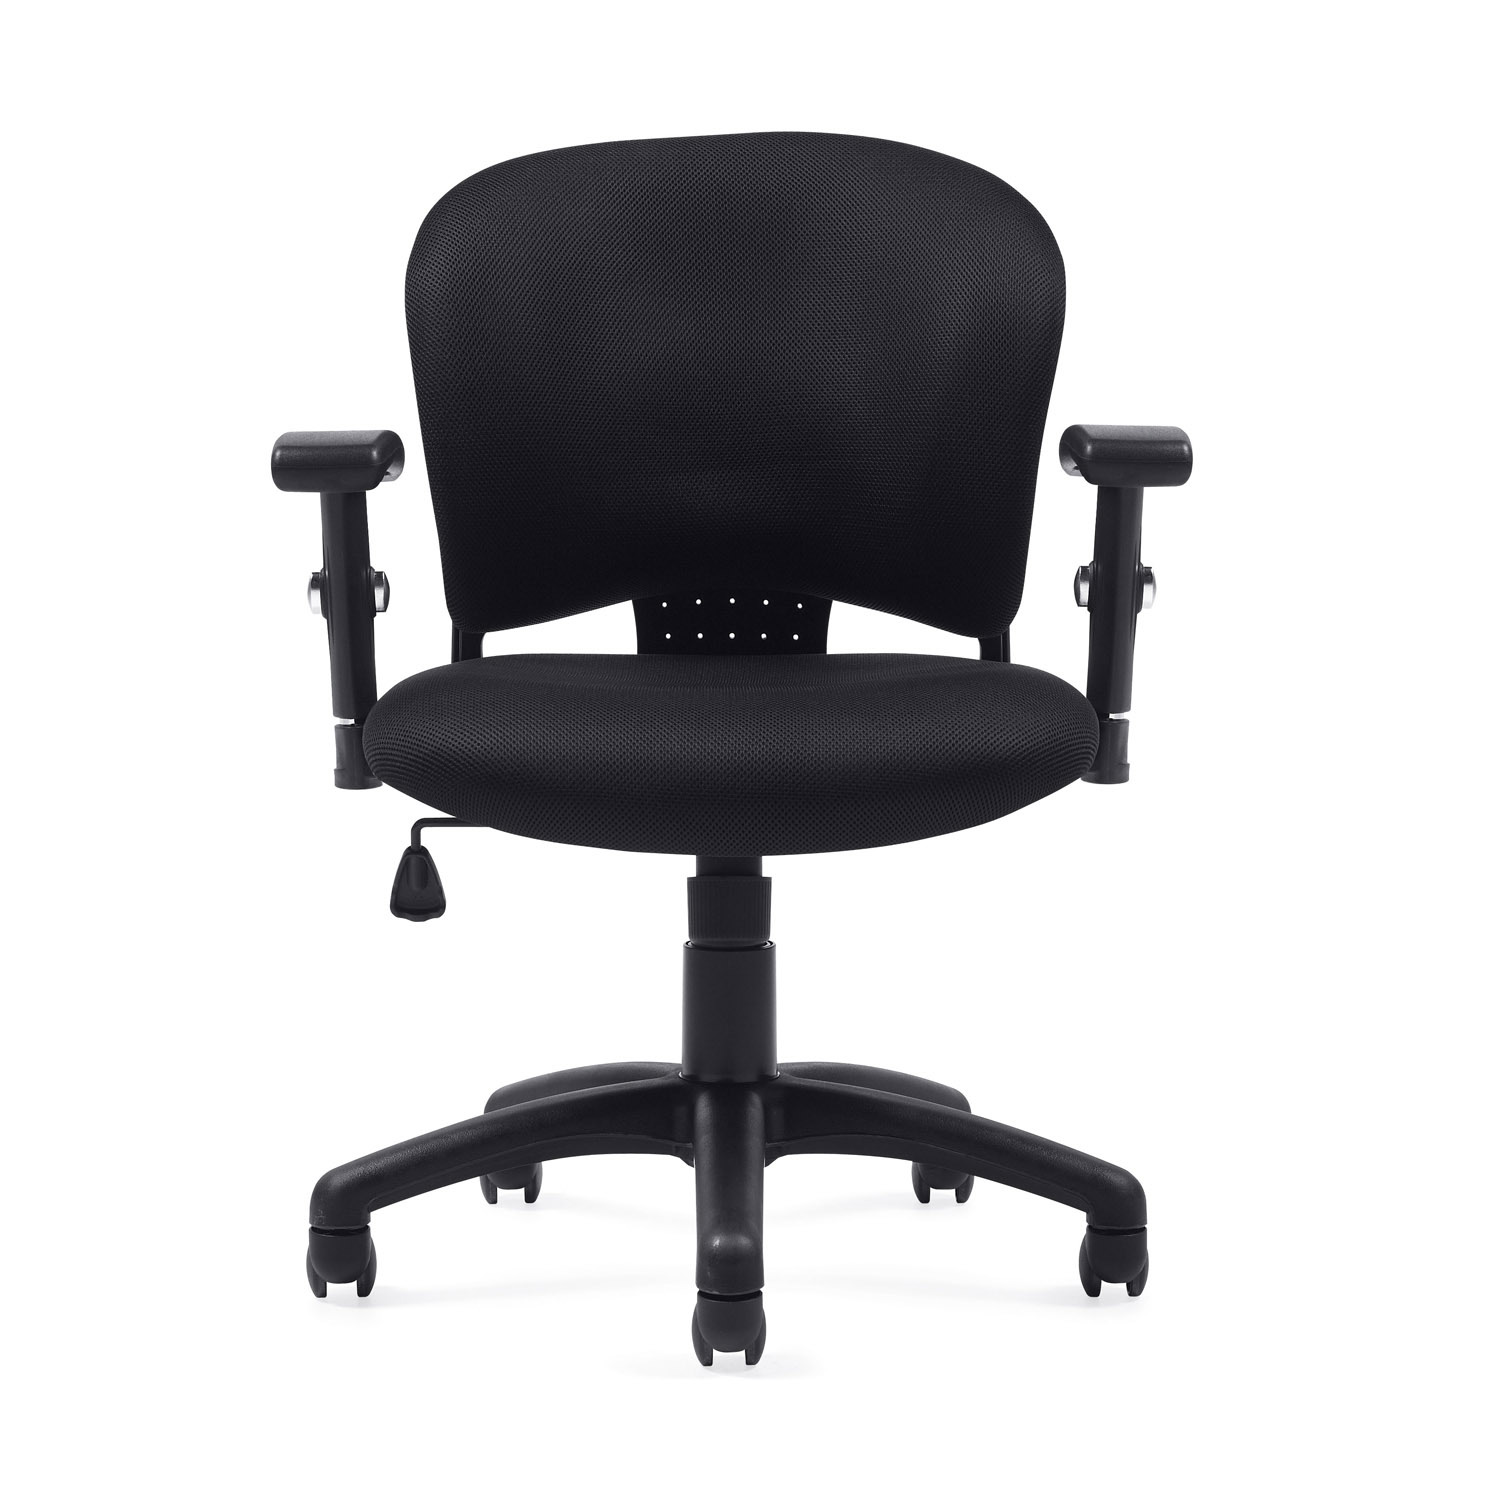 desk chair fabric finishing touches covers essex office chairs discount furniture